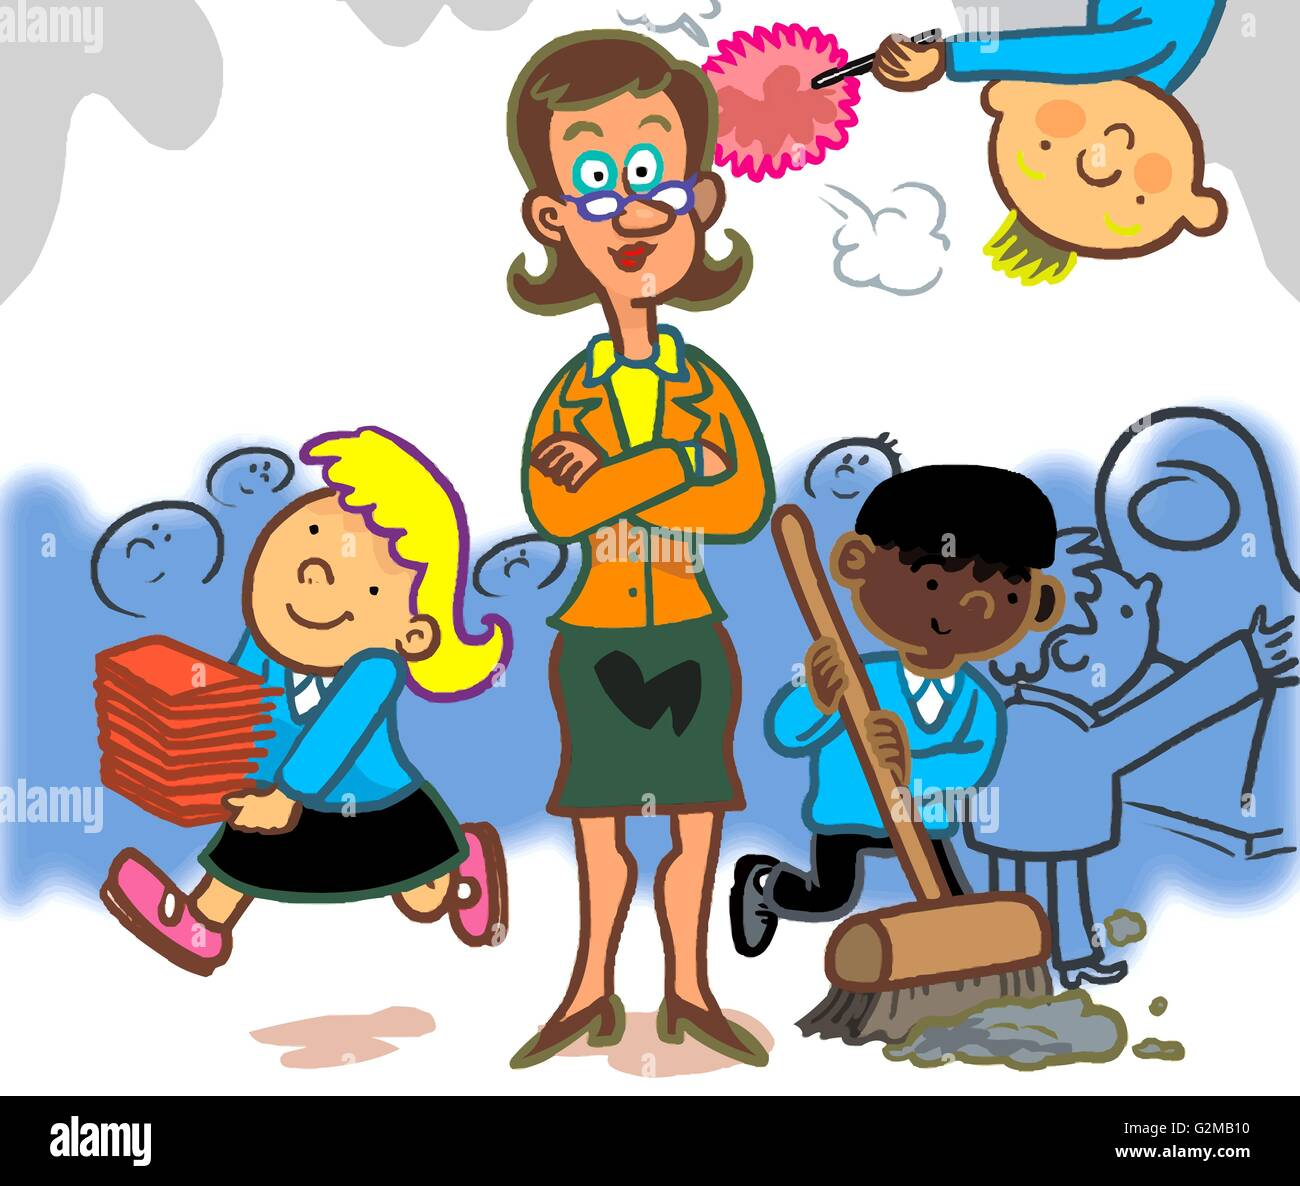 children cleaning classroom stock photo: 104939212 - alamy